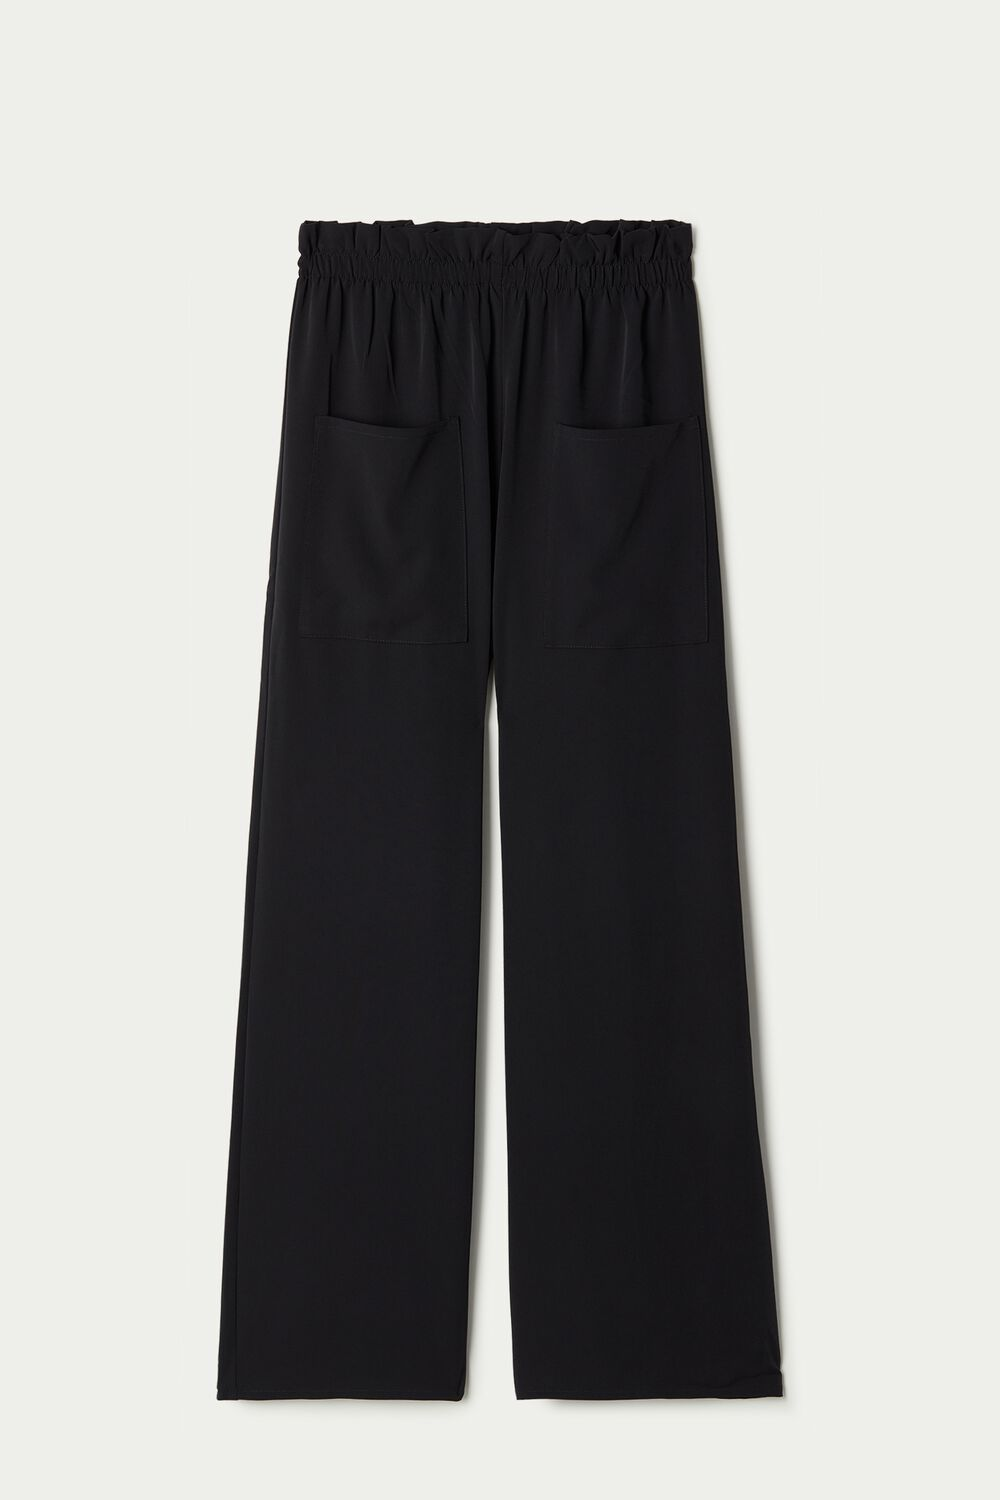 Long Pants with Pockets